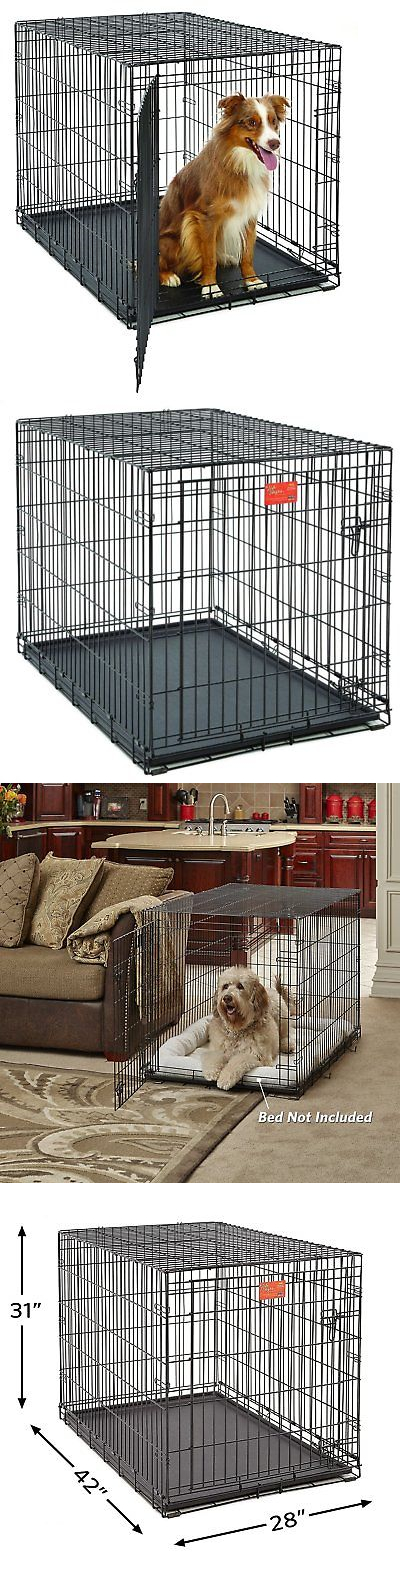 Cages And Crates 121851 Midwest Life Stages 42 Inch Single Door